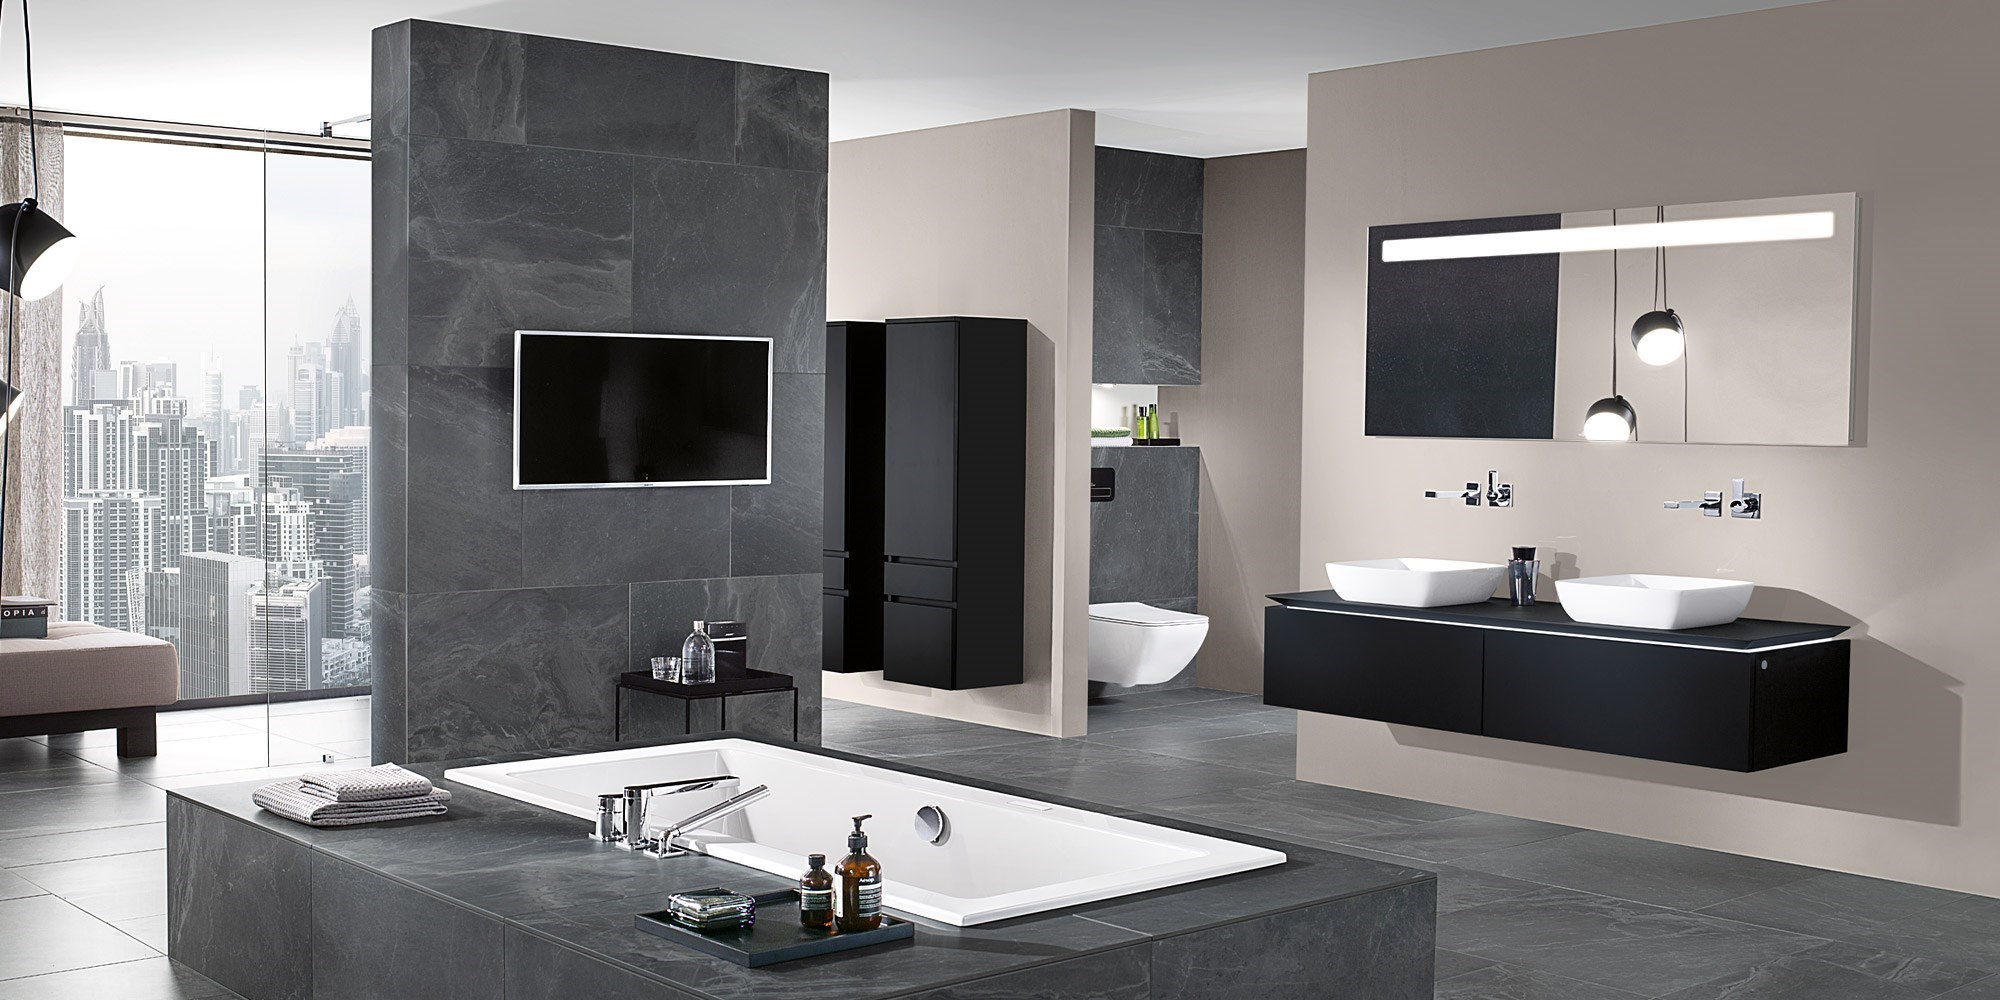 Bathrooms. Styles. Contemporary · Classical · Traditional